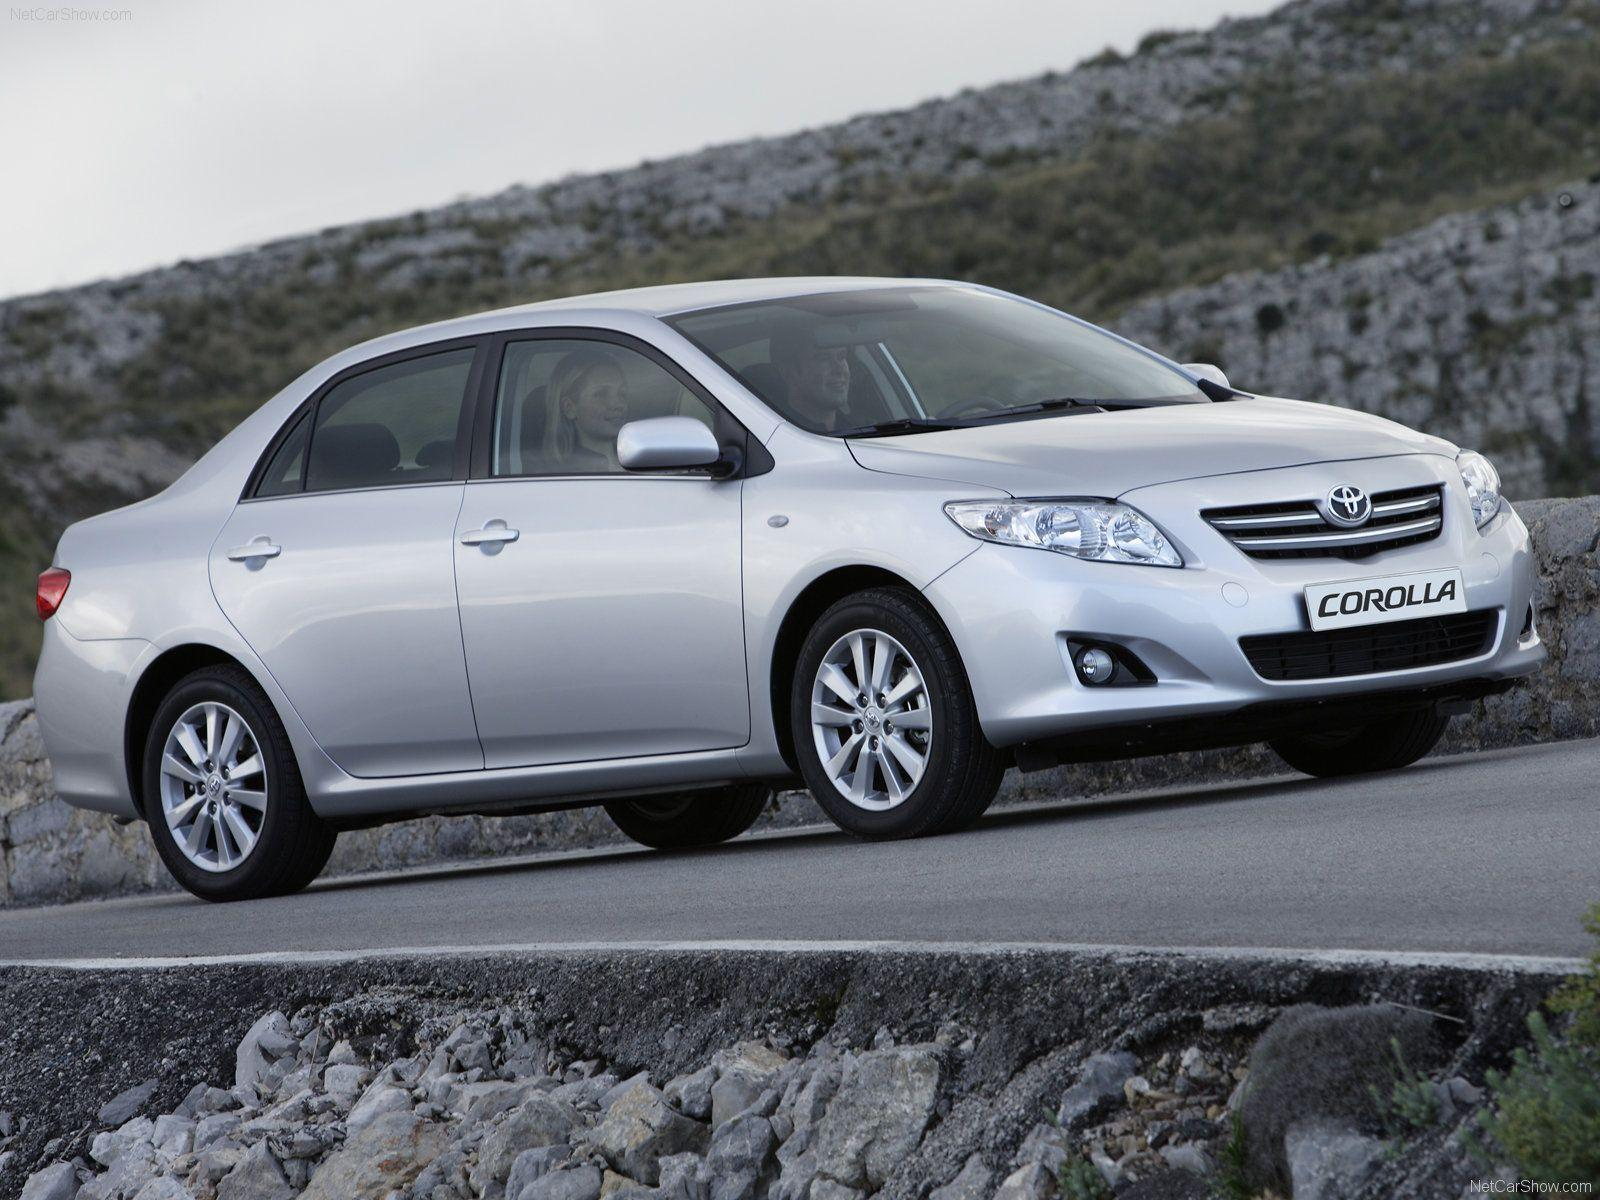 Reliable car Toyota Corolla wallpapers and images - wallpapers ...